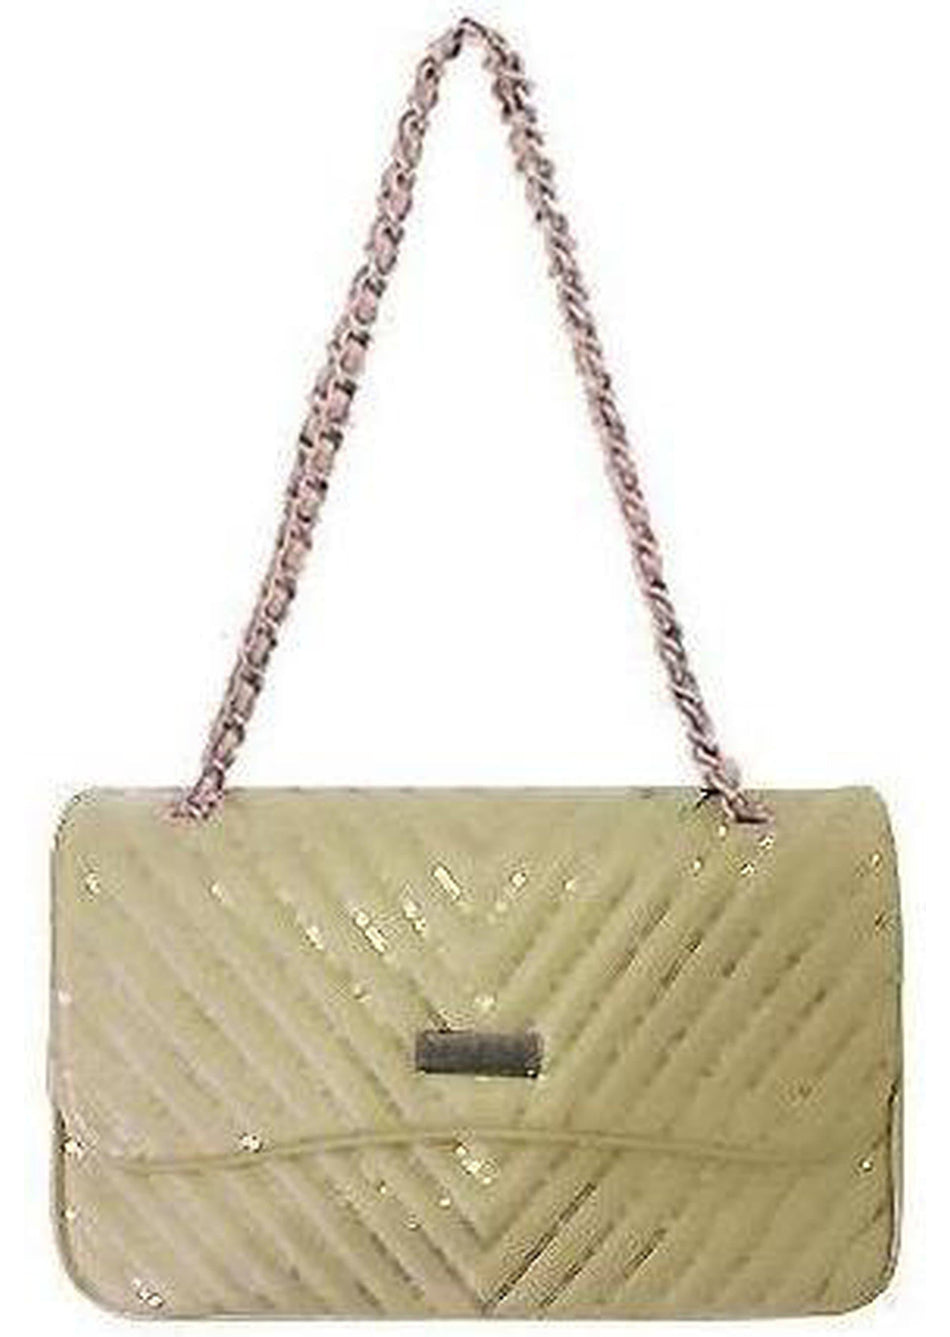 tracolla media pailettes MIA BAG - Vittorio Citro Boutique